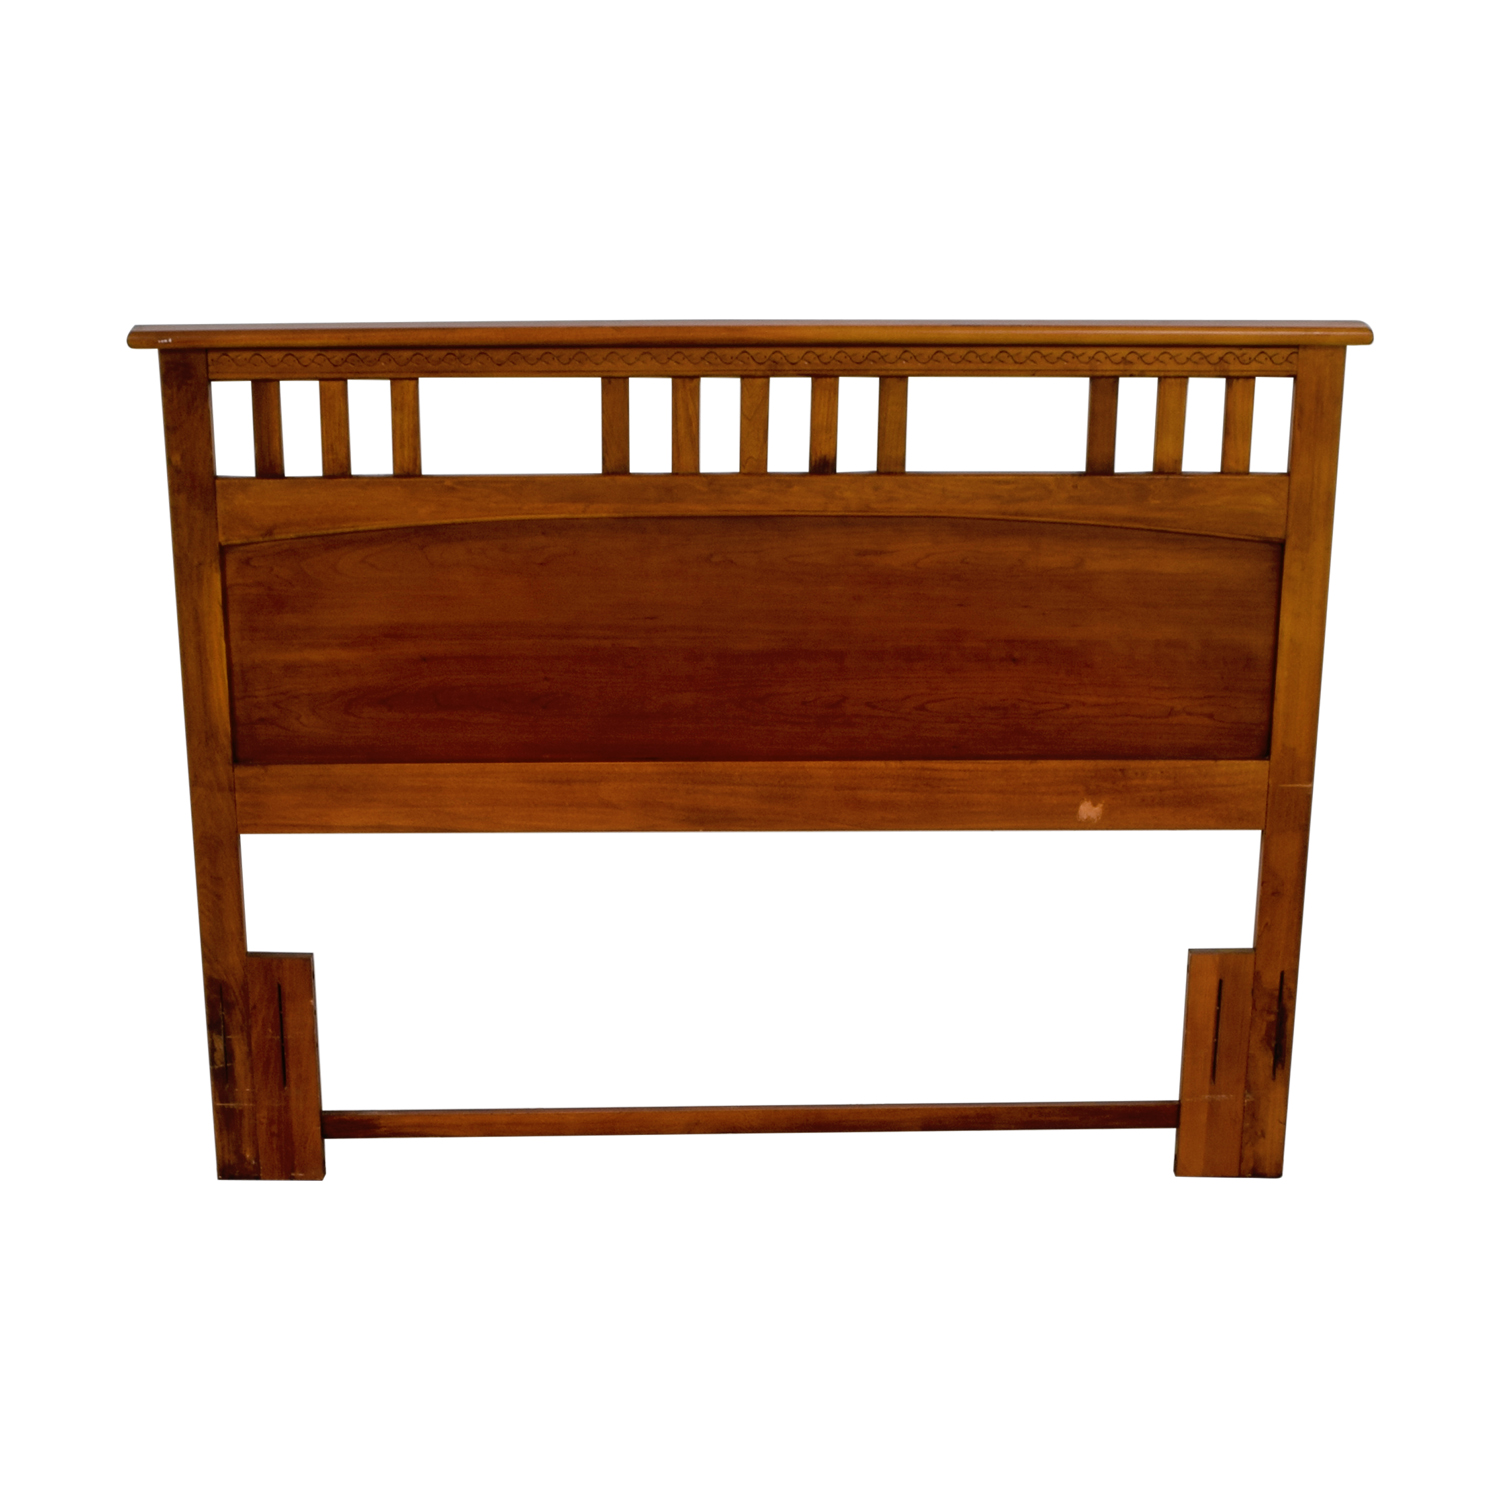 Vaughan Furniture Company Wooden Queen Headboard sale